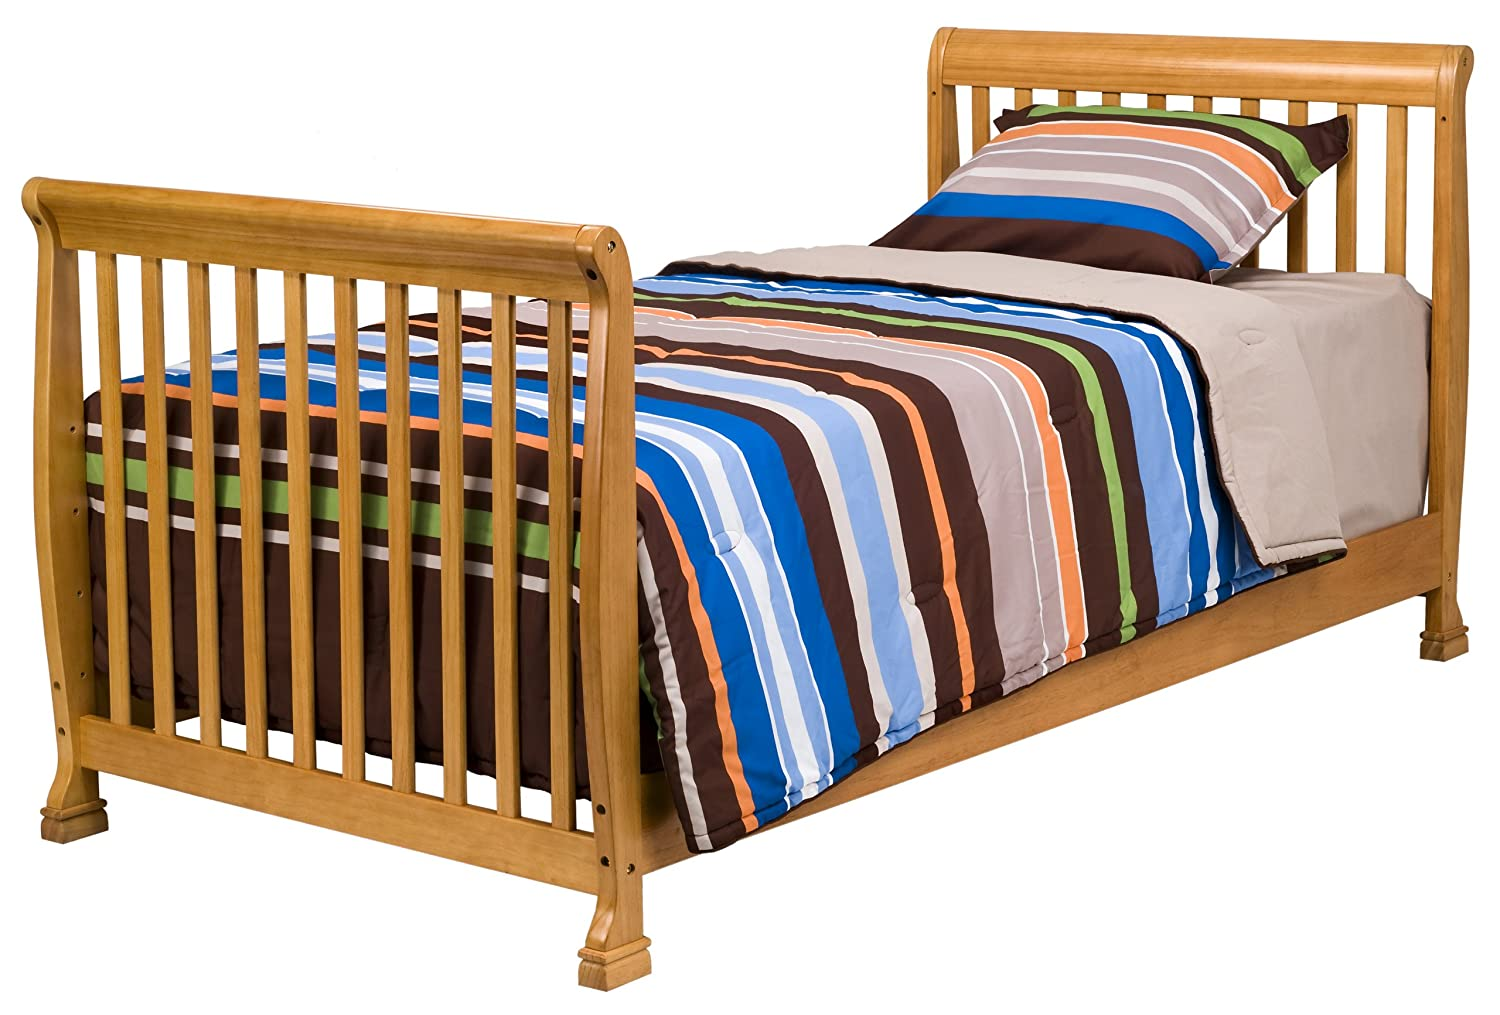 amazing oak rustic nat hardwood cribs nursery solid furniture baby teak with anderson cool crib